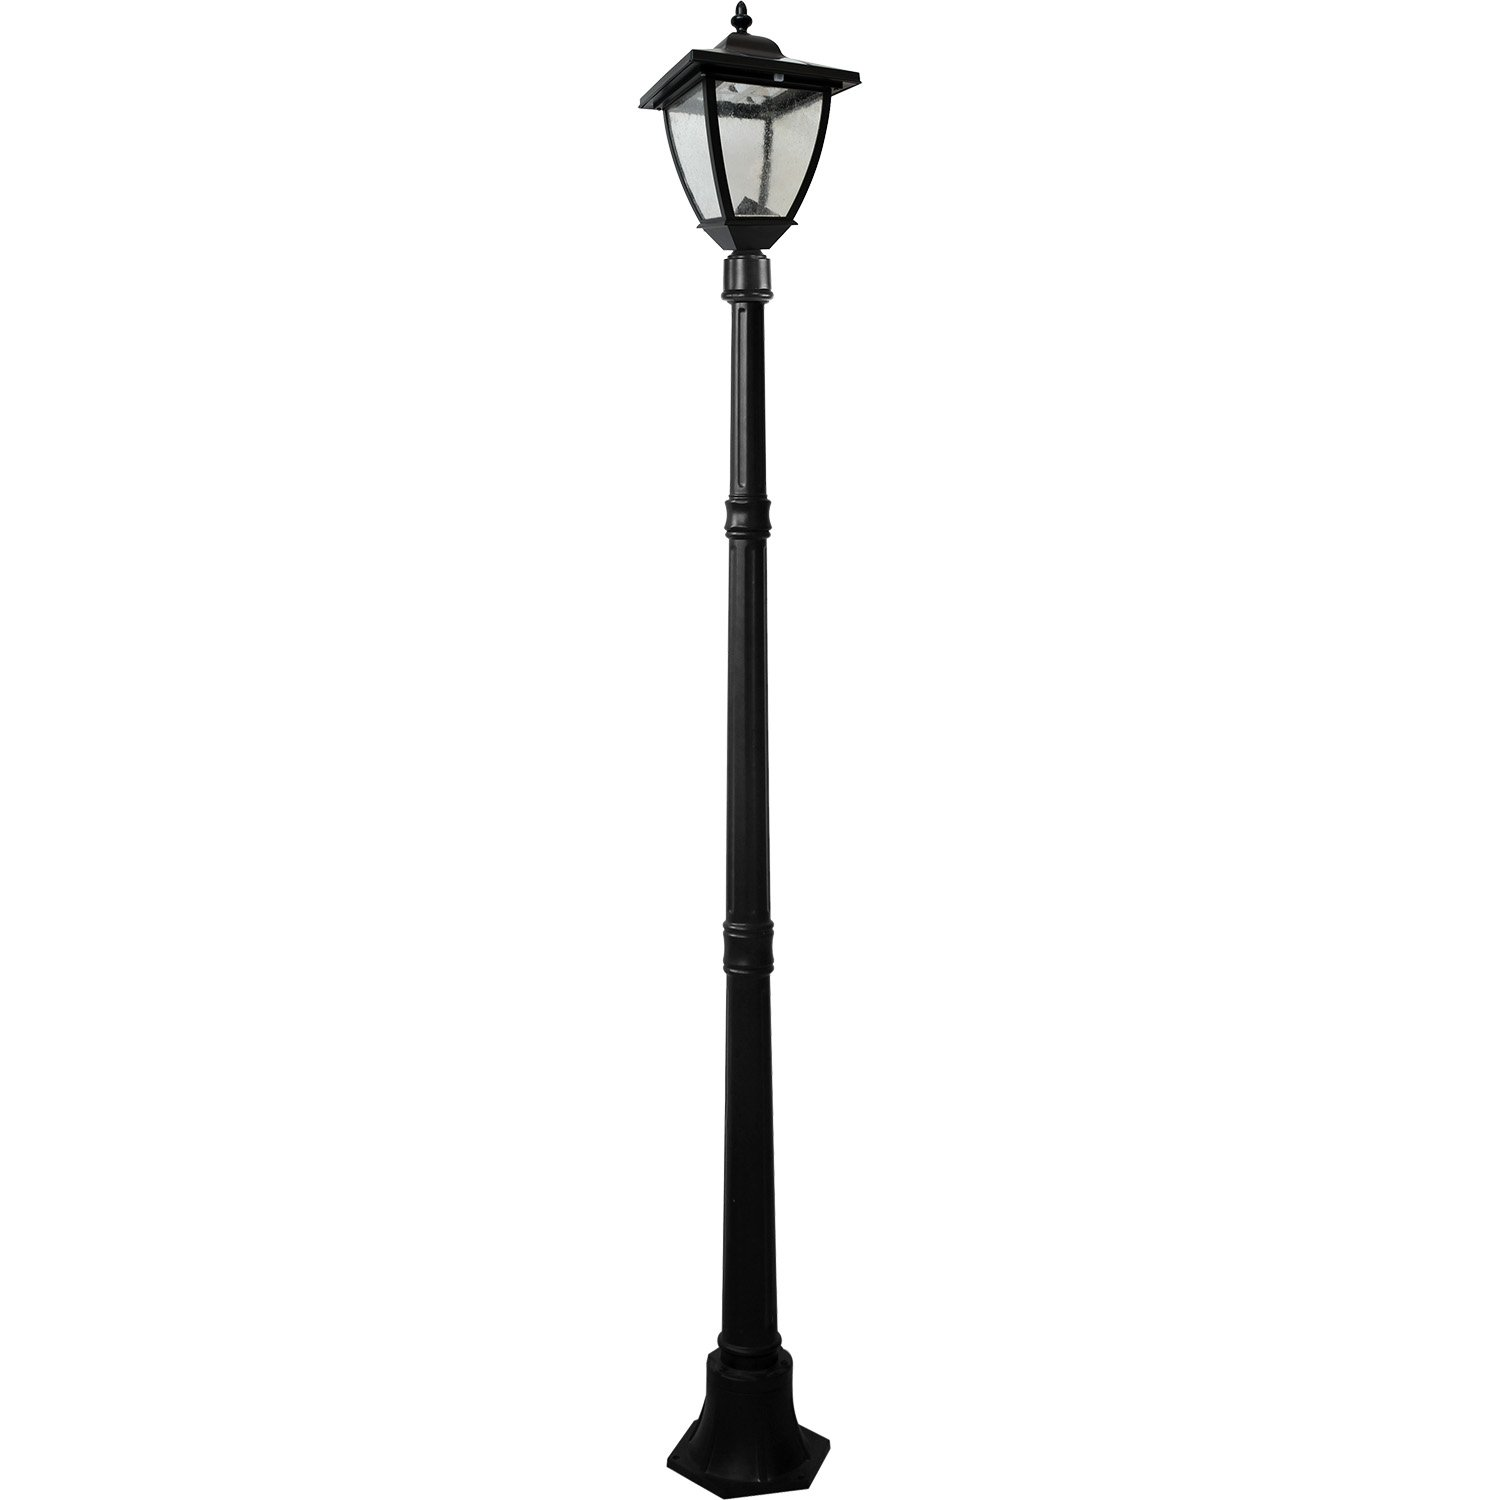 Nature Power 23106 72-Inch Bayport Solar Charged Lamp Post with Super Bright Natural White LEDs, Black